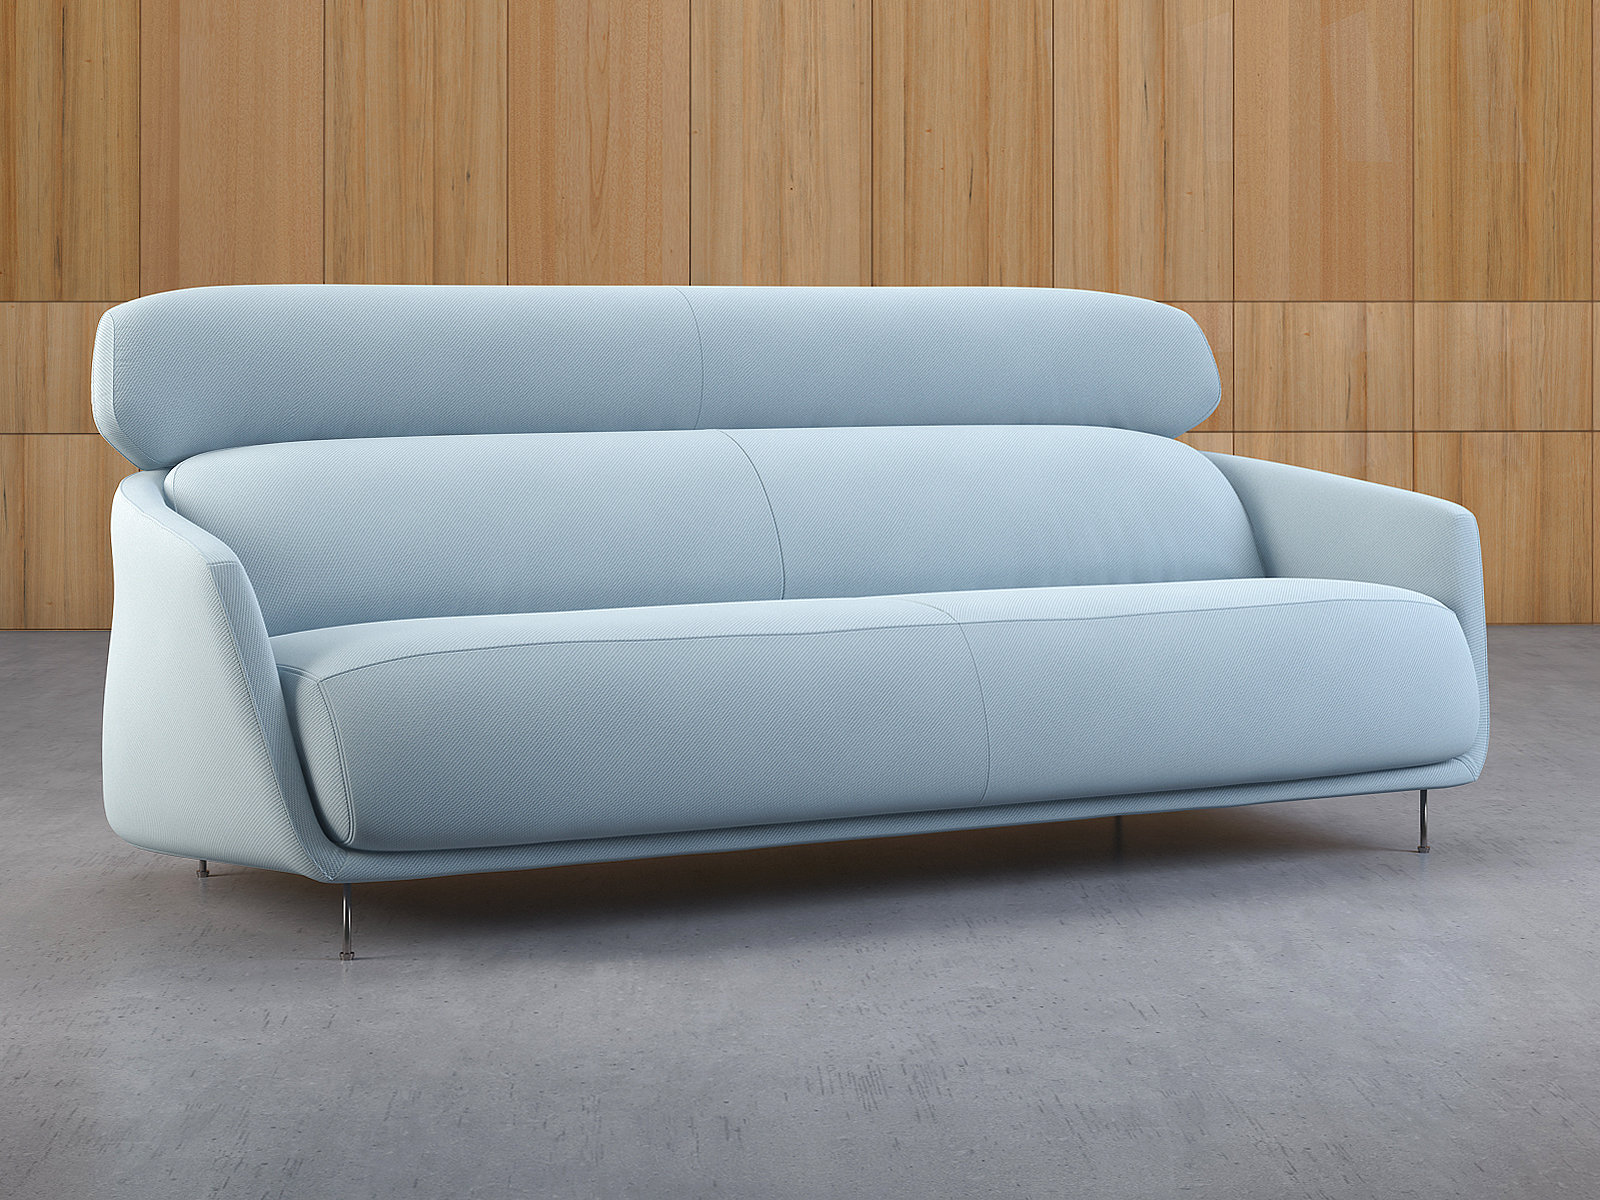 Okura Sofa High Rest 3d Model Ligne Roset